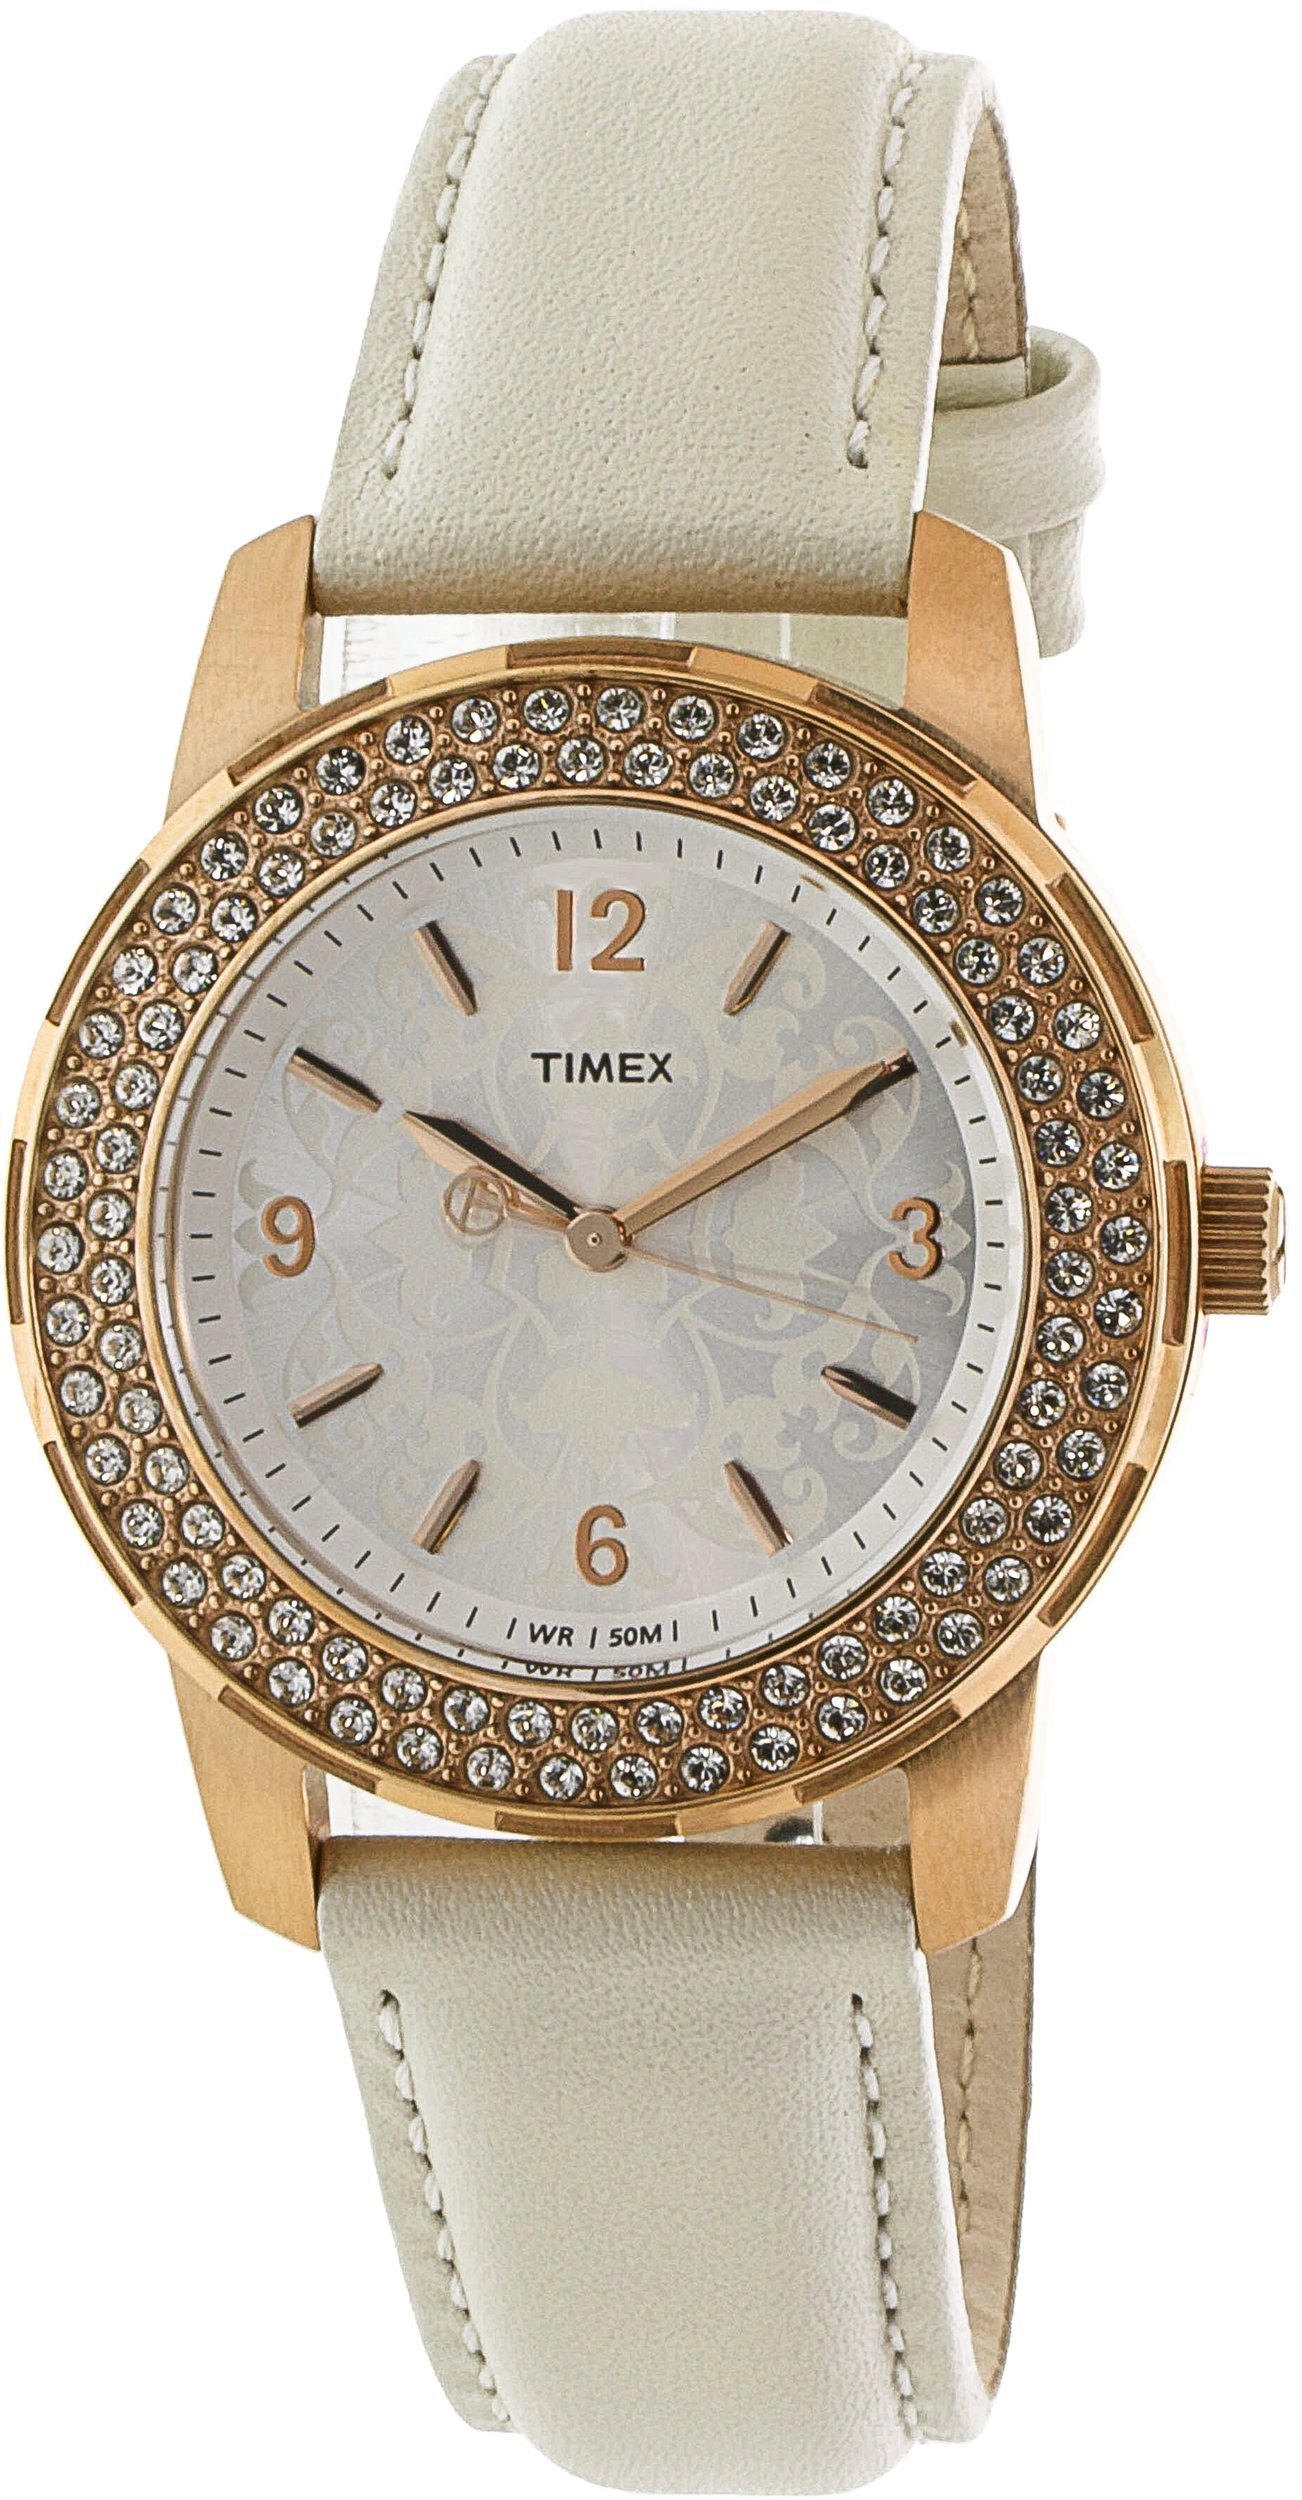 Timex Women's Style Premium T2P400 Rose-Gold Leather Japanese Quartz Fashion Watch